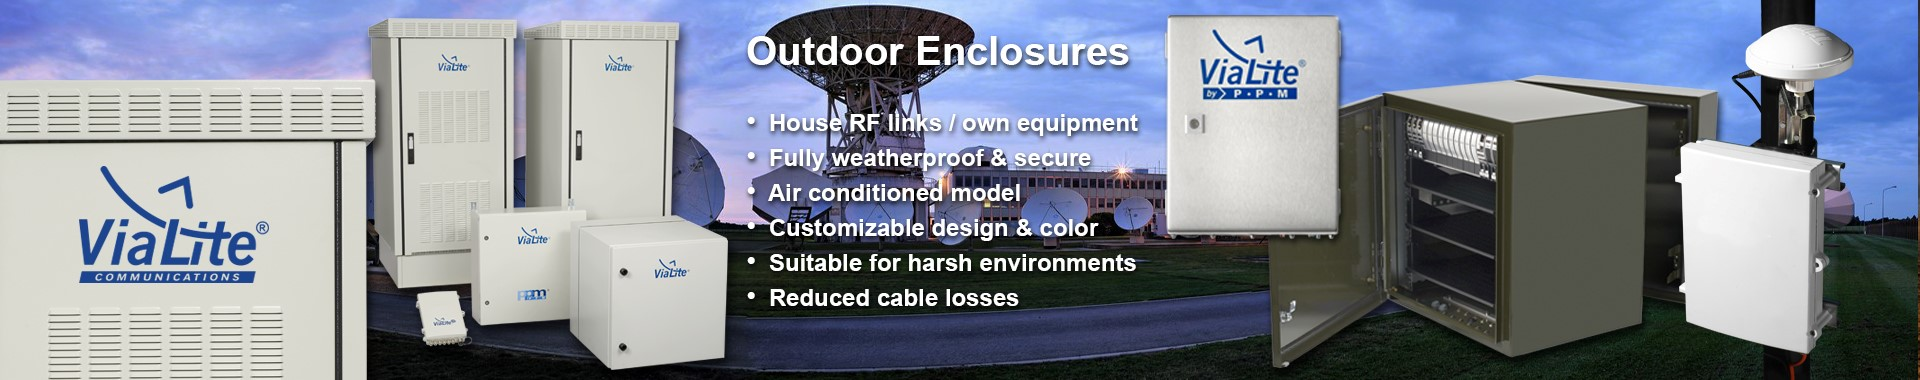 ViaLite Outdoor Enclosures: House RF links/own equipment, Fully weatherproof and secure, Air conditioned model...